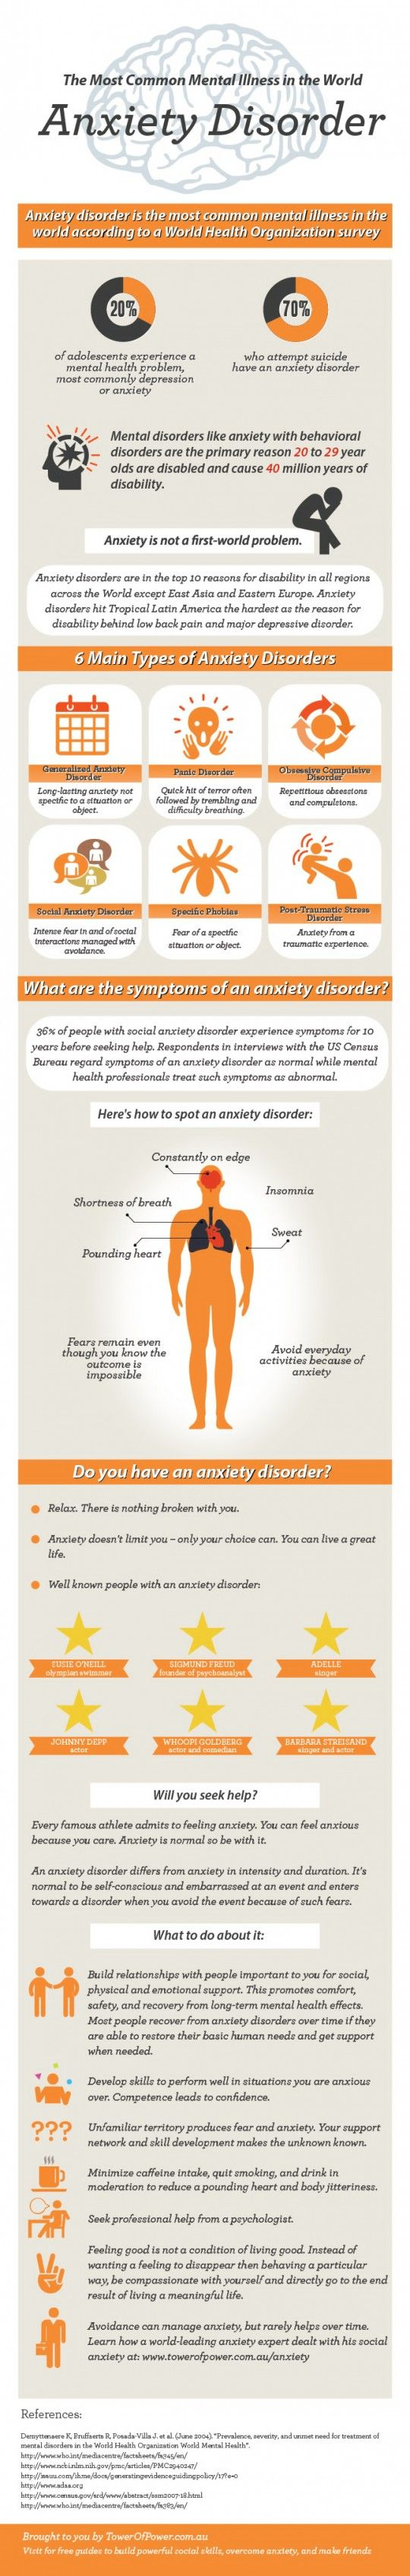 Surprising Facts About Anxiety Disorders � 7 Ways to Cope